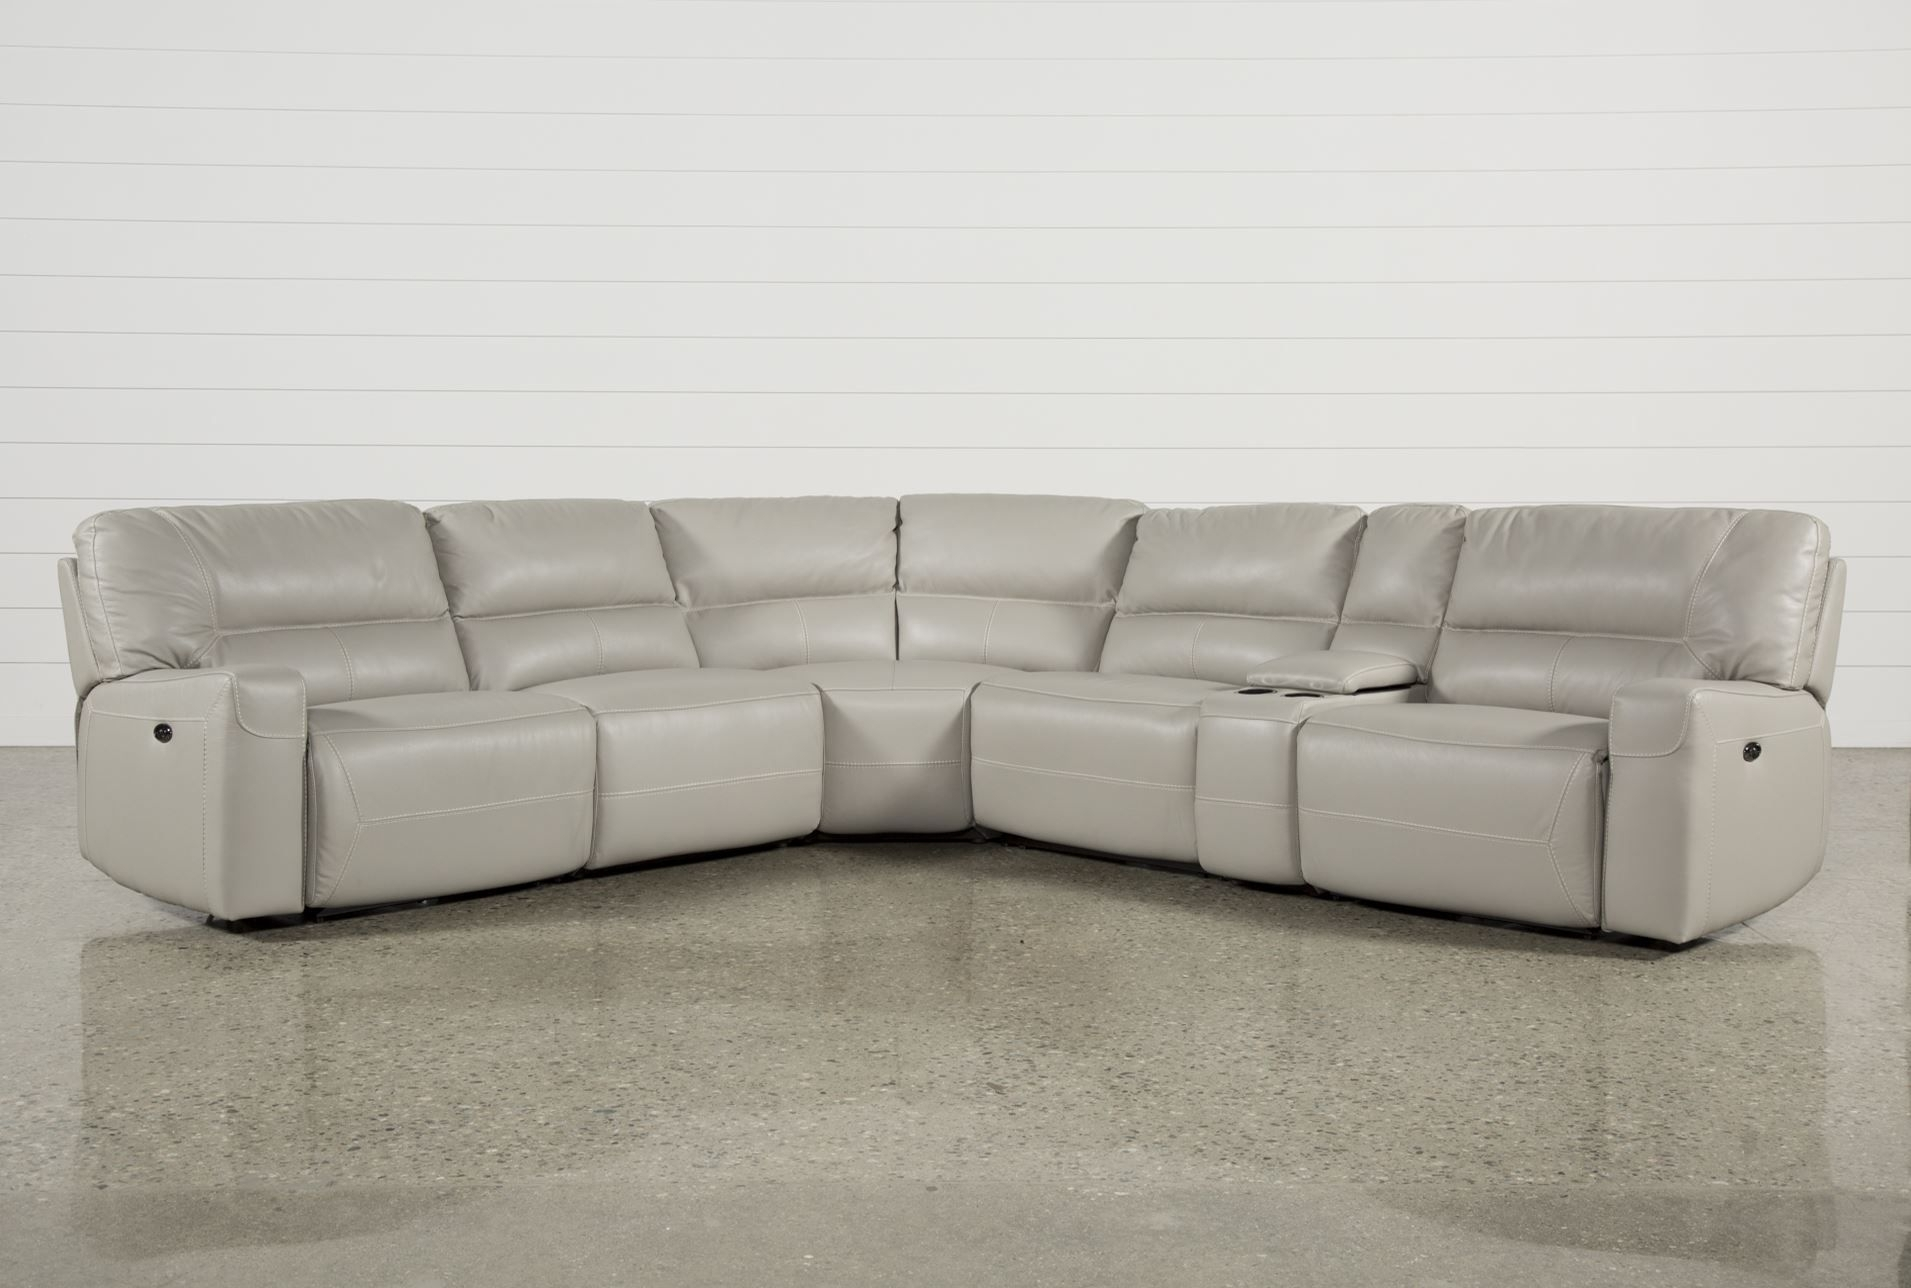 6 Piece Power Reclining Sectional, Renaldo, Grey, Sofas | Reclining In Waylon 3 Piece Power Reclining Sectionals (Photo 5 of 25)